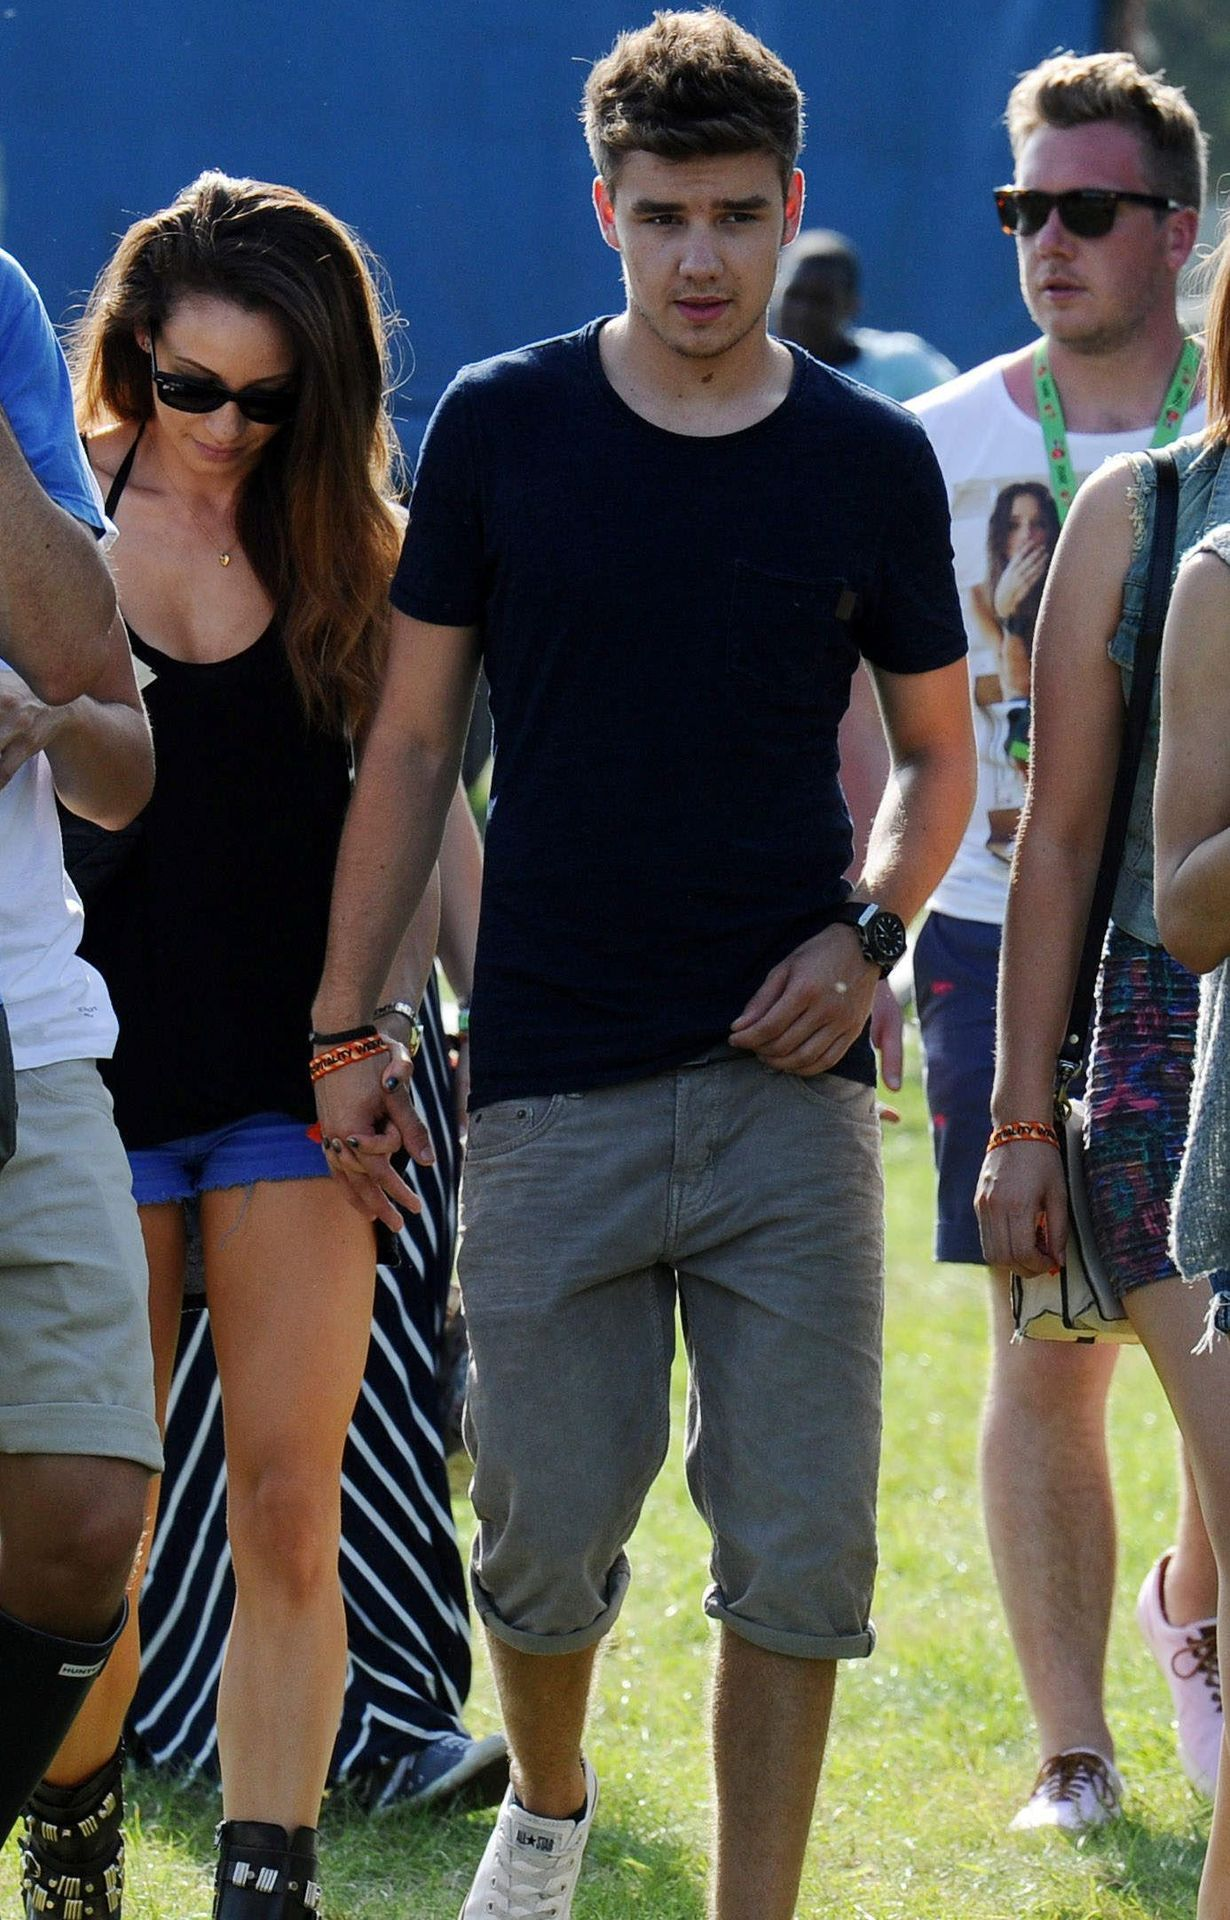 Liam and Danielle at the V festival | The girlfriends ...